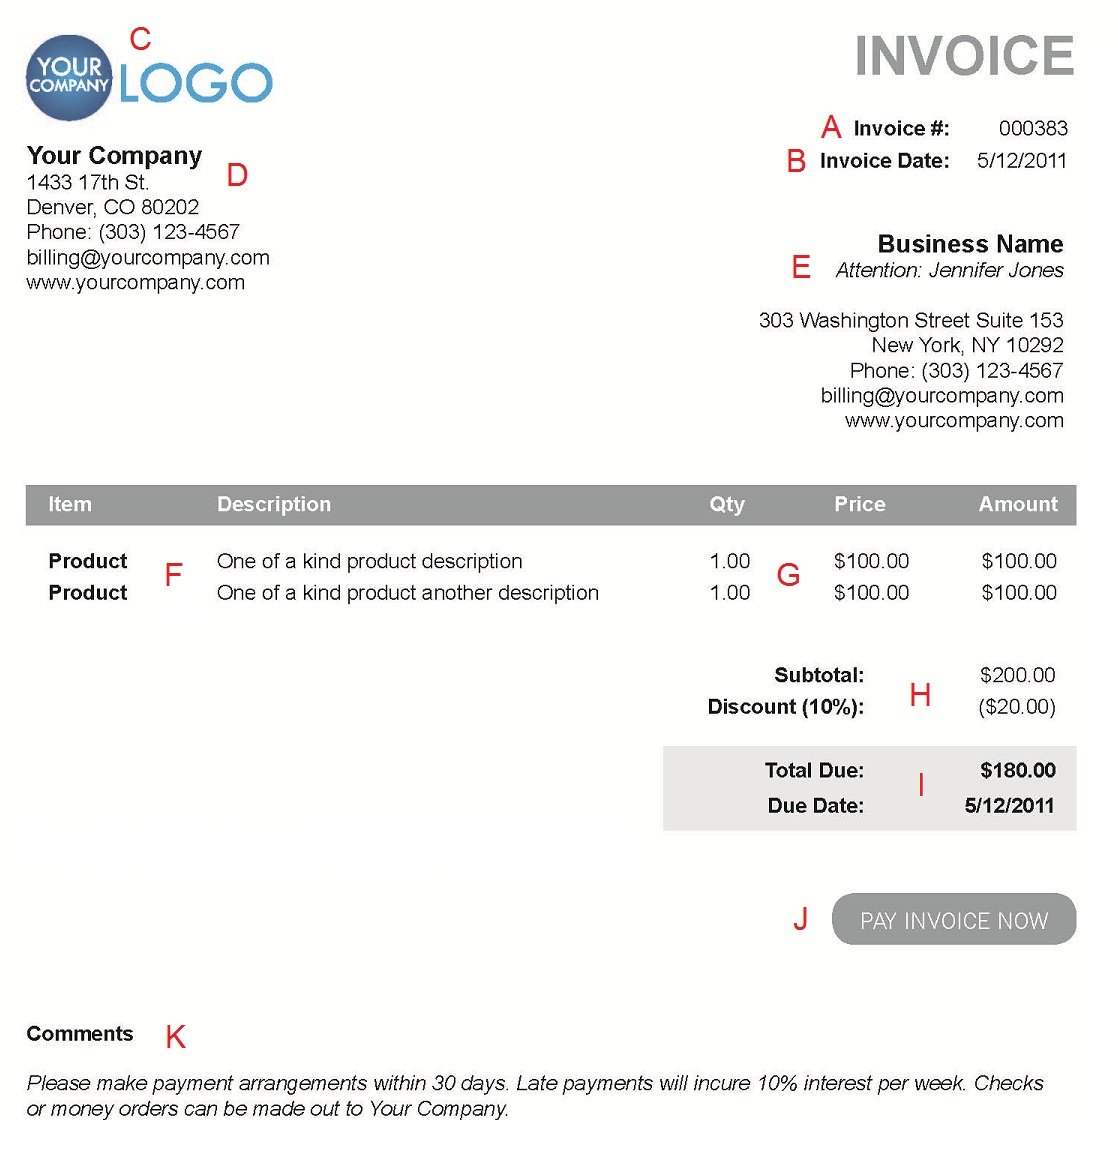 Opposenewapstandardsus  Pleasing The  Different Sections Of An Electronic Payment Invoice With Great A  With Adorable Software Development Invoice Also Bmw X Invoice Price In Addition Invoice Template Microsoft And Create Invoice In Word As Well As Sample Handyman Invoice Additionally Proforma Invoice Letter Sample From Paysimplecom With Opposenewapstandardsus  Great The  Different Sections Of An Electronic Payment Invoice With Adorable A  And Pleasing Software Development Invoice Also Bmw X Invoice Price In Addition Invoice Template Microsoft From Paysimplecom